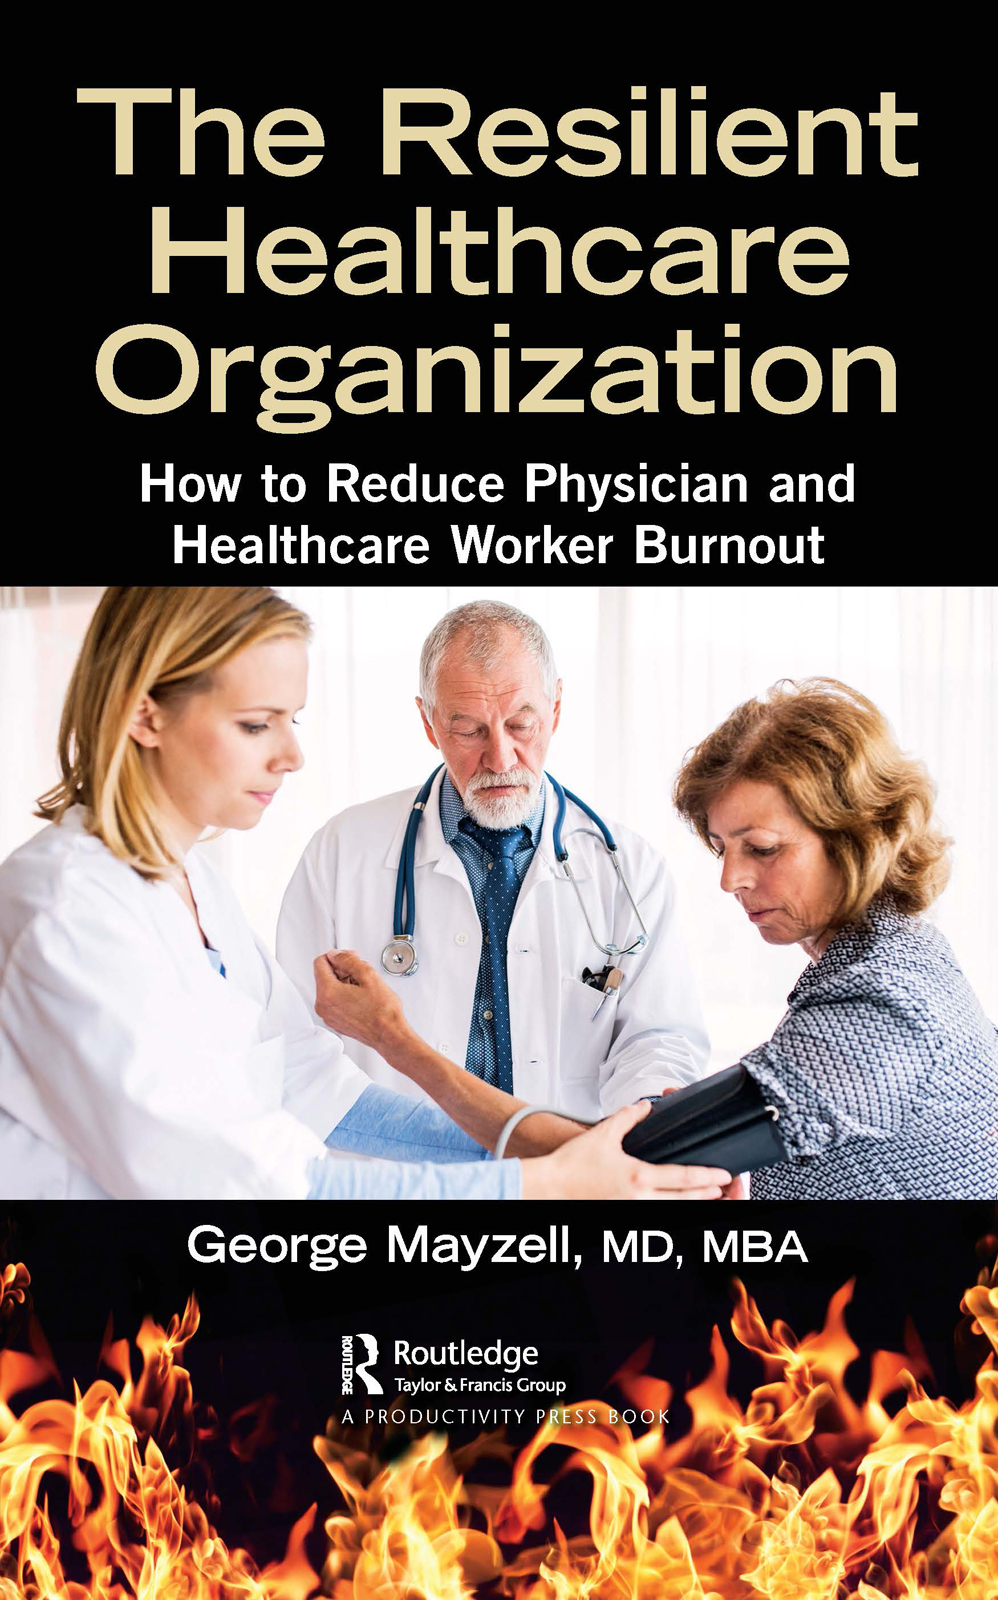 The Resilient Healthcare Organization: How to Reduce Physician and Healthcare Worker Burnout book cover